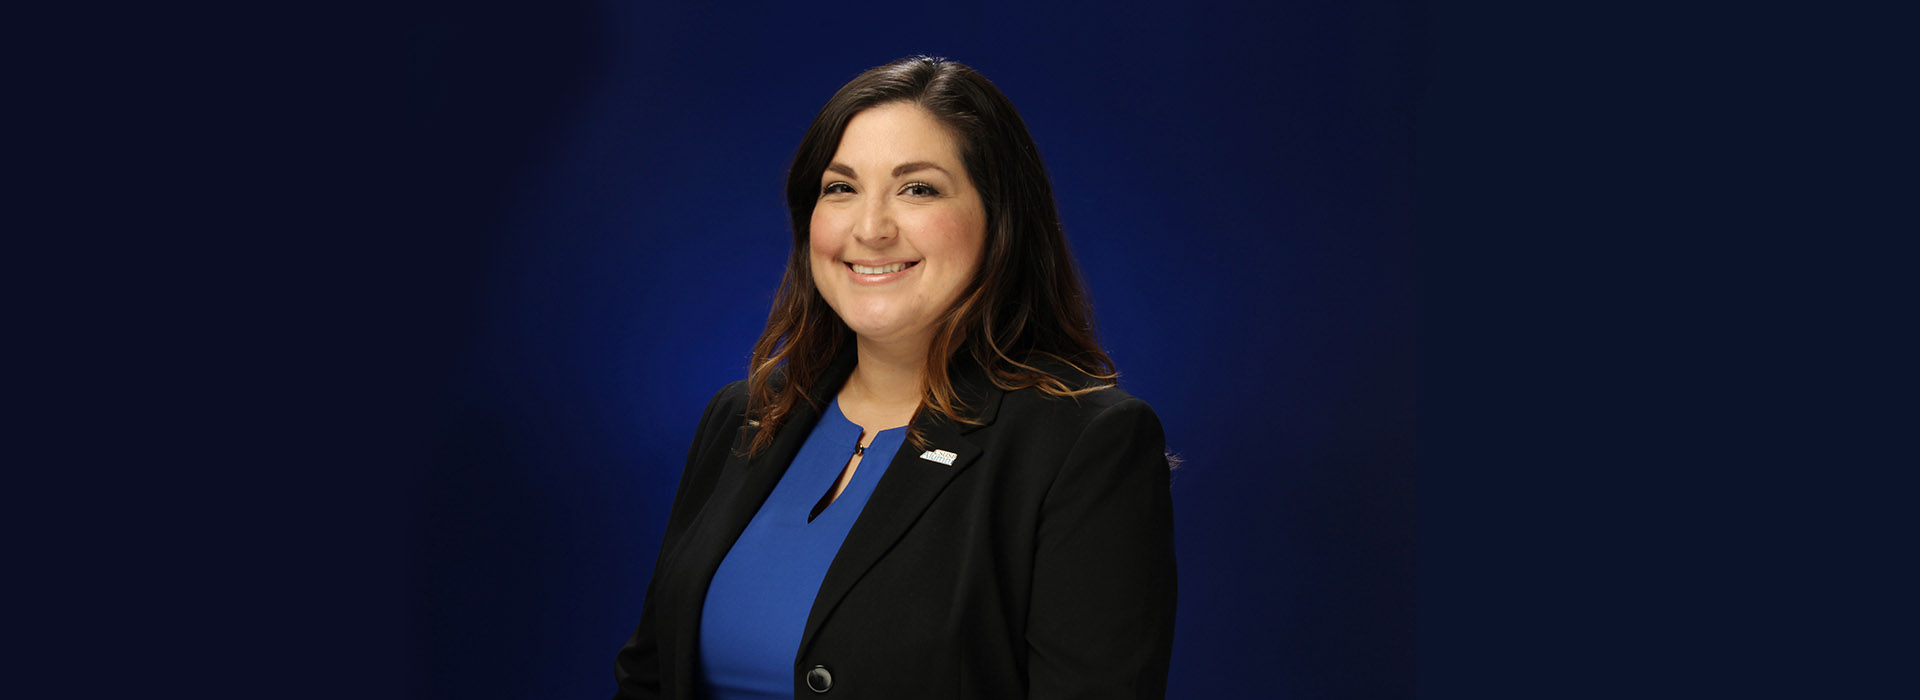 CSUSB alumna Crystal Wymer-Lucero appointed director of university's Alumni Affairs